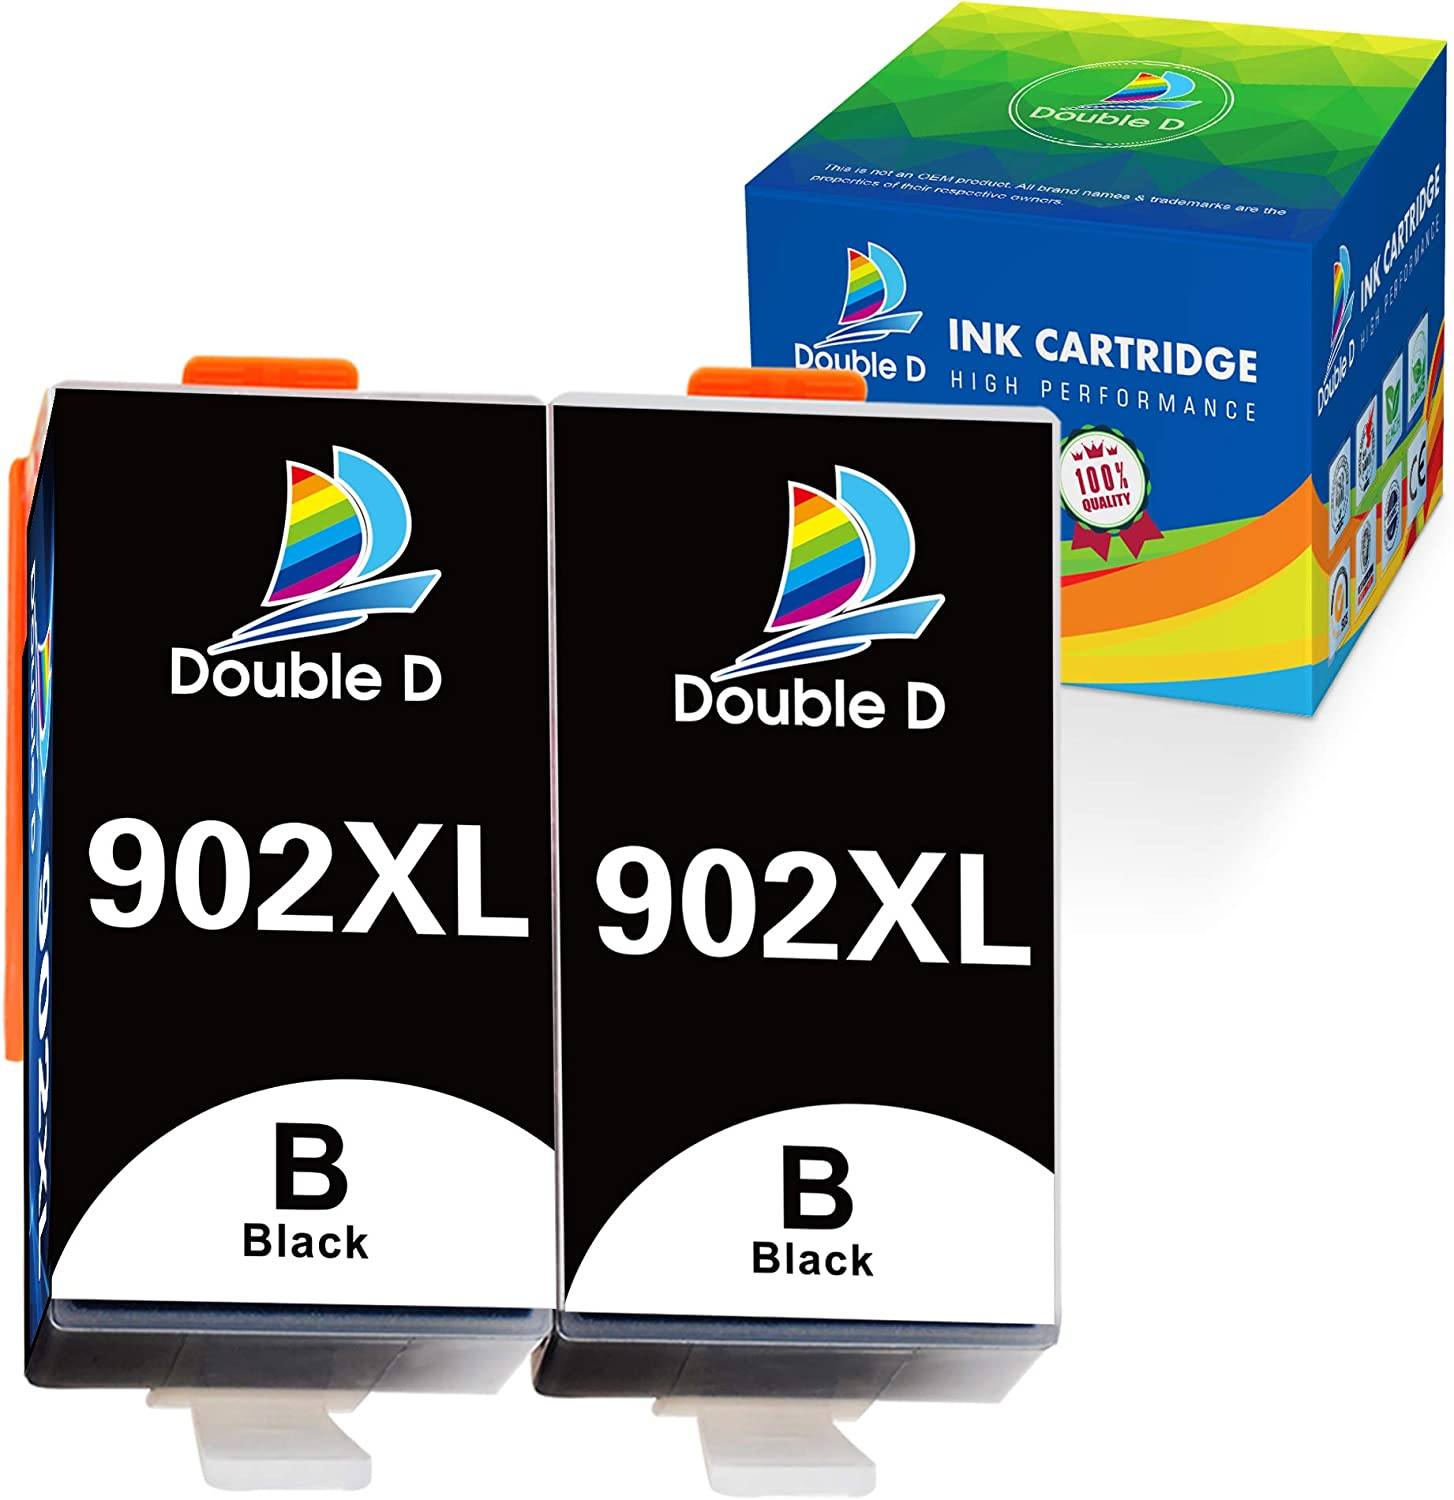 Double D 902XL Black Ink Cartridges Compatible Replacement for HP 902 902XL (Upgrade Chip) for HP OfficeJet Pro 6978 6962 6968 6975 6960 6970 6950 6954 6979 6951 Printer (2Black)